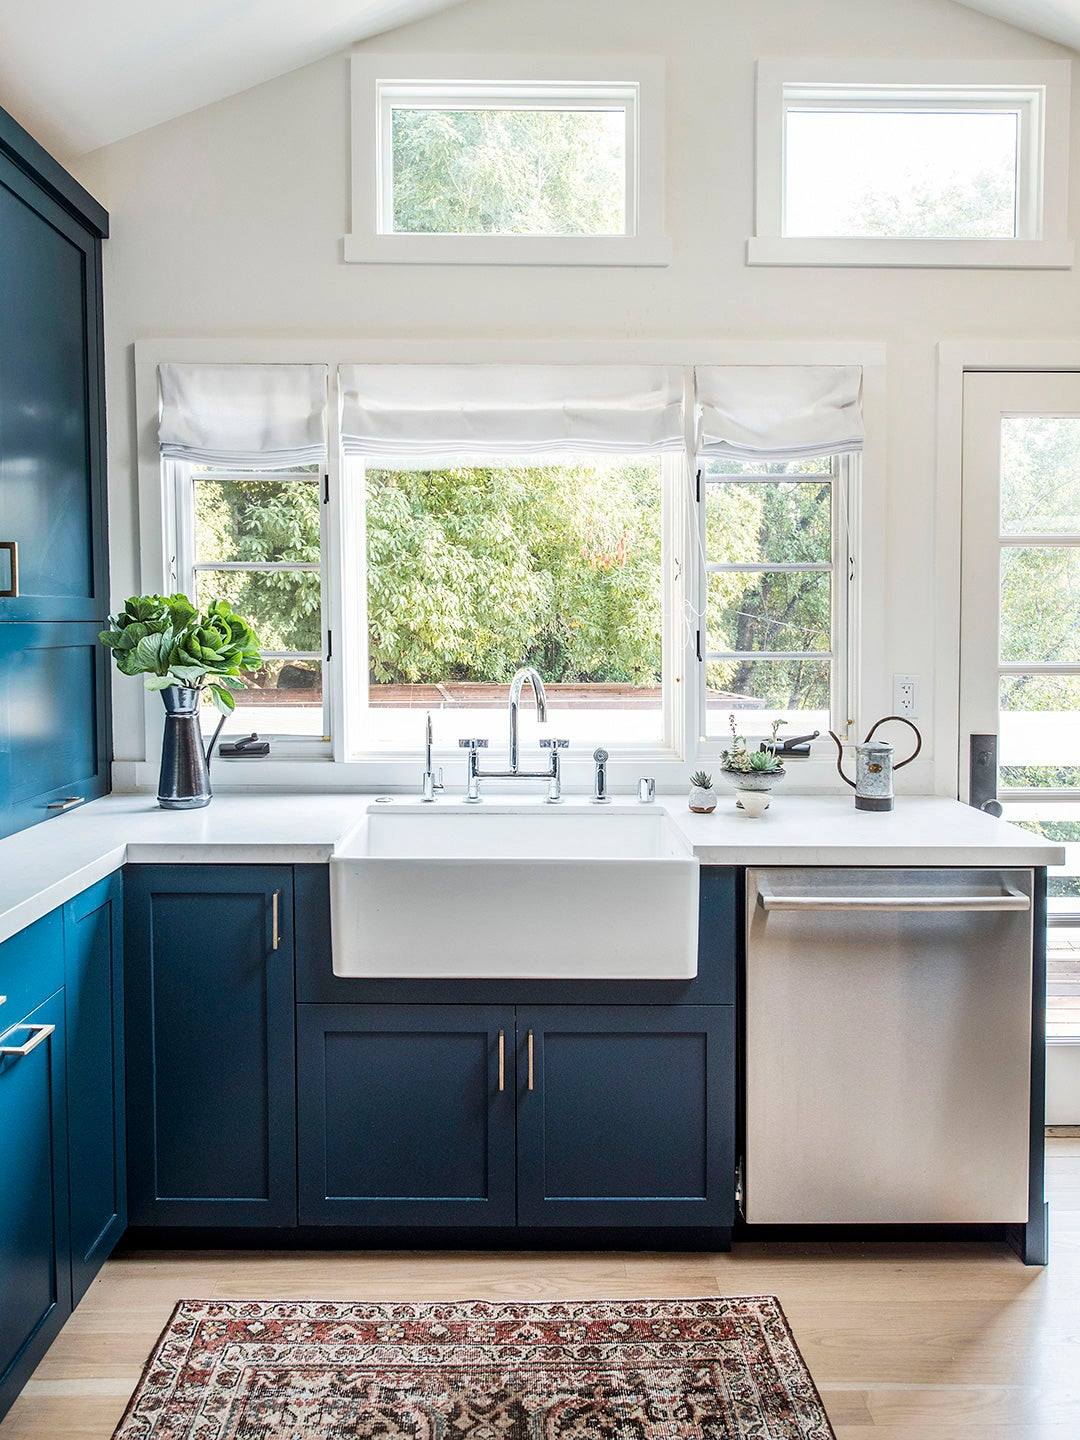 00-FEATURE-navy-blue-kitchen-cabinets-domino